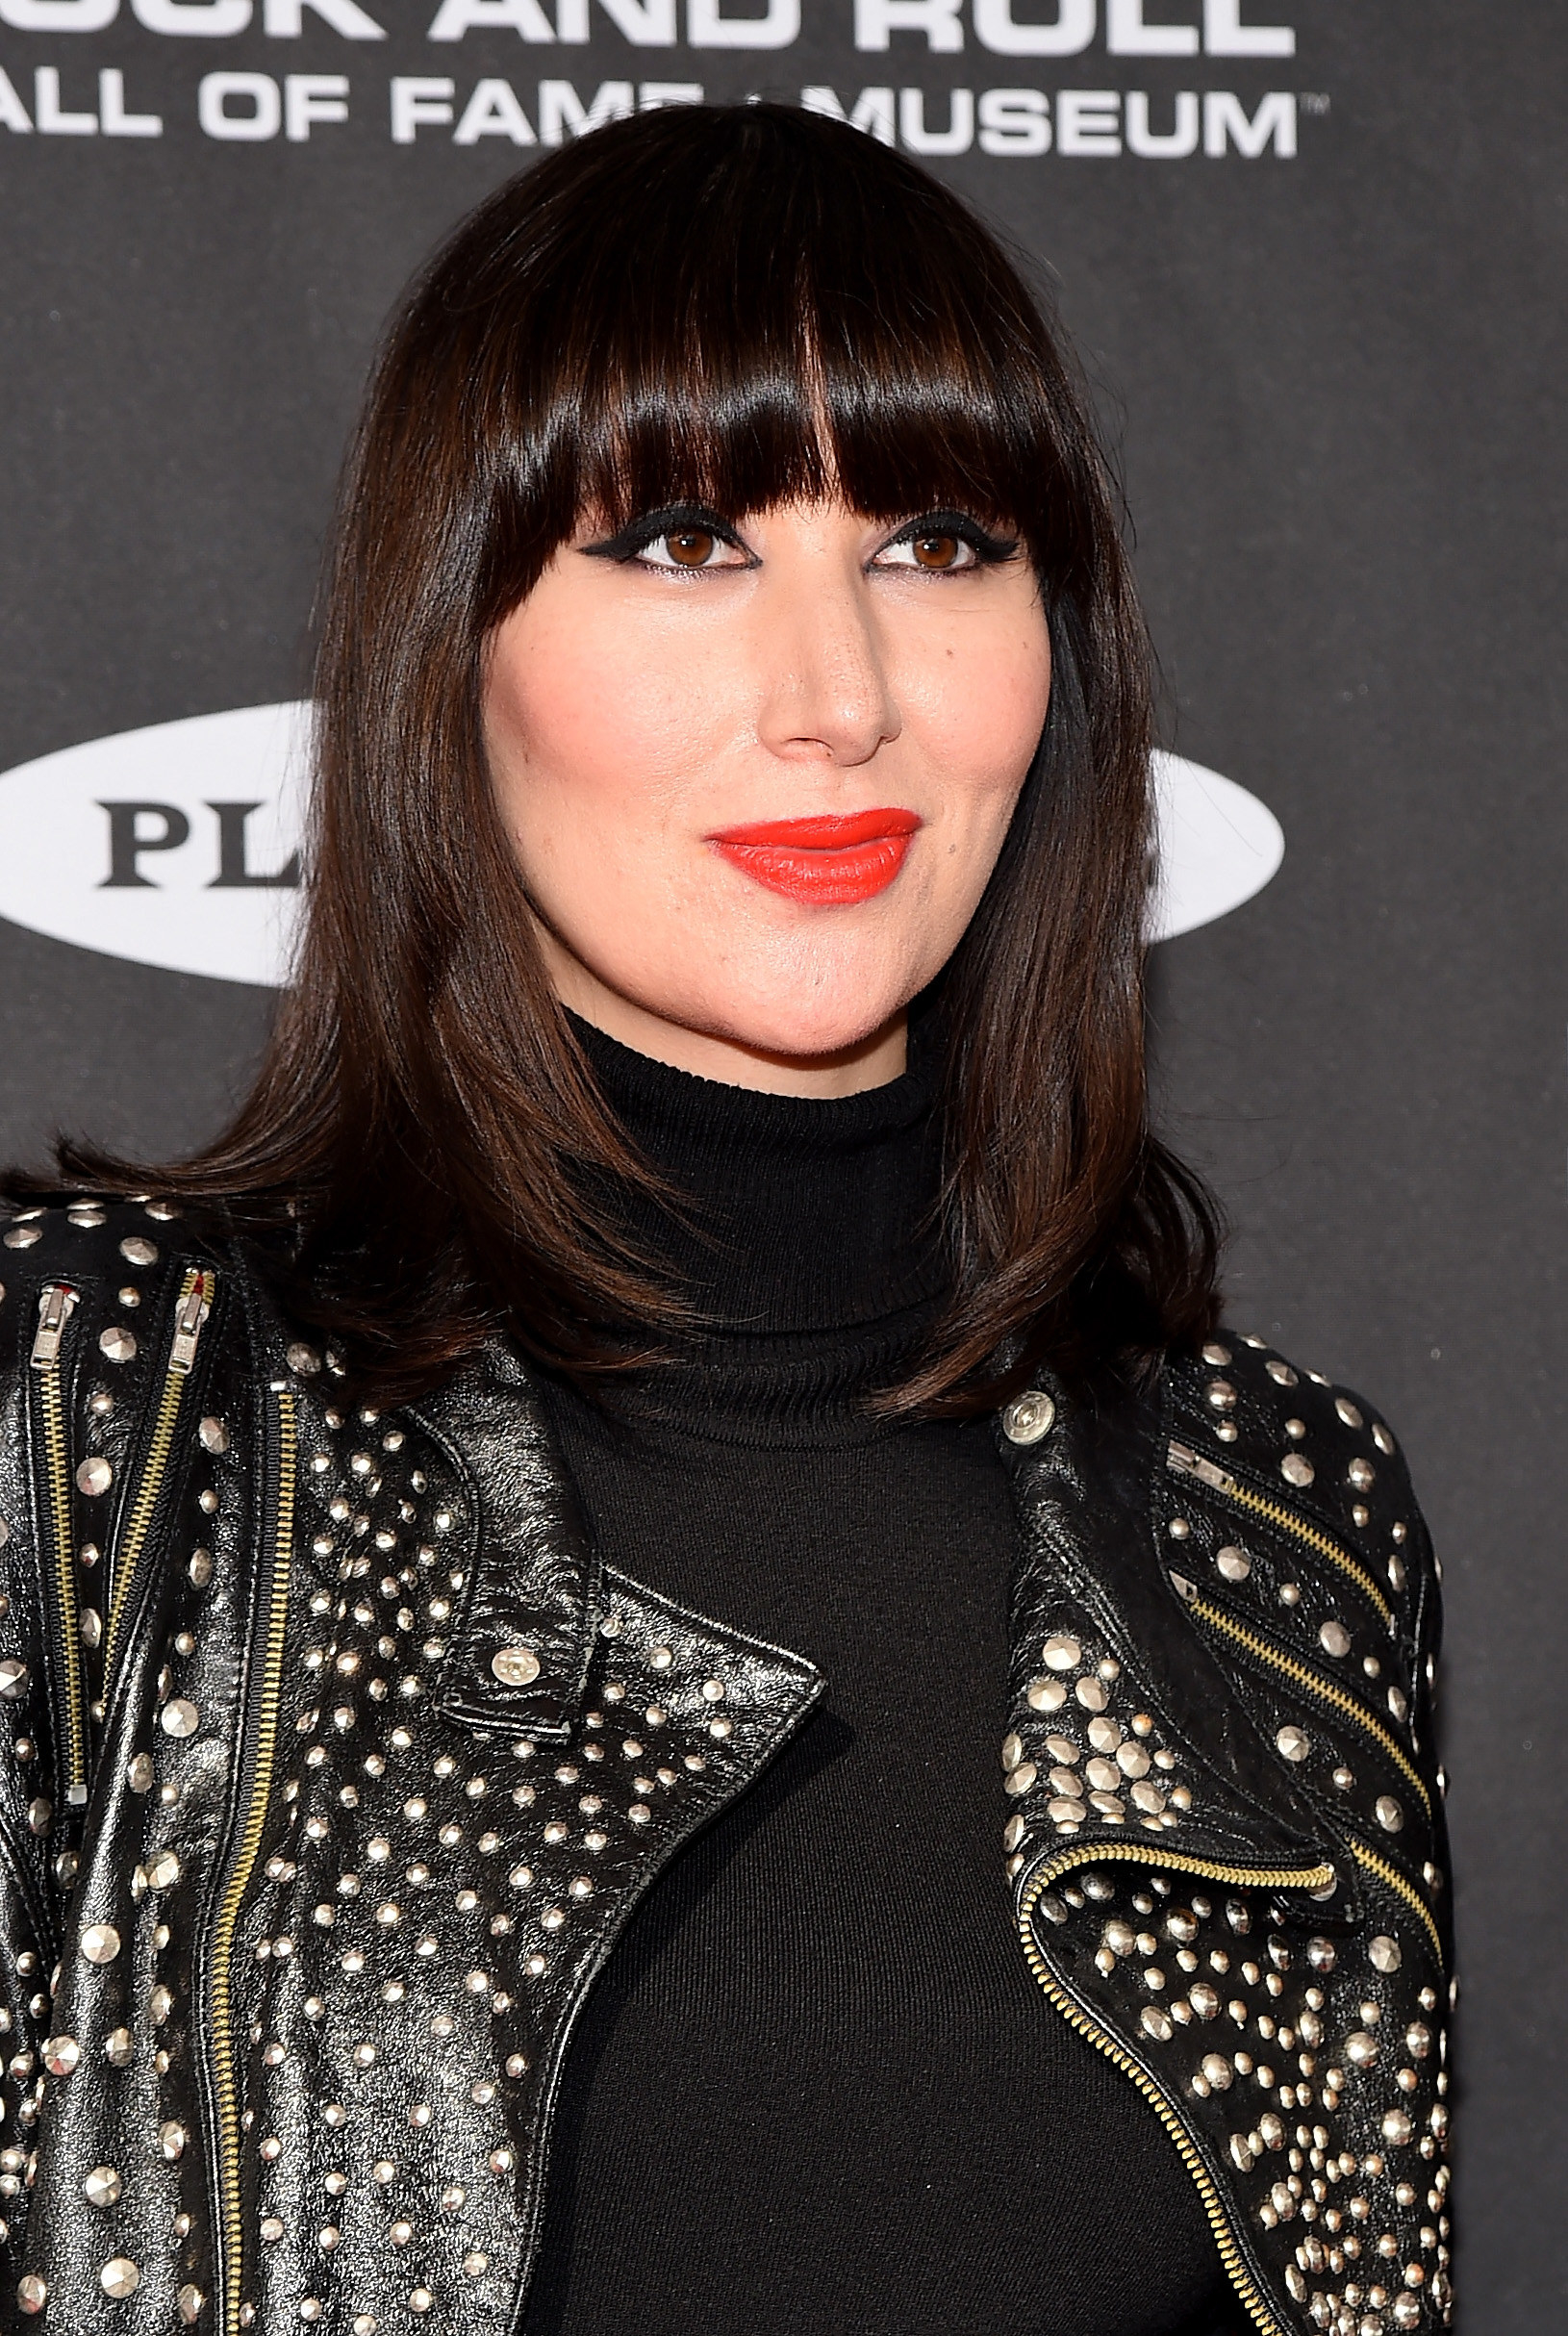 Karen O smiles with a bold red lipstick, black turtleneck, and leather jacket